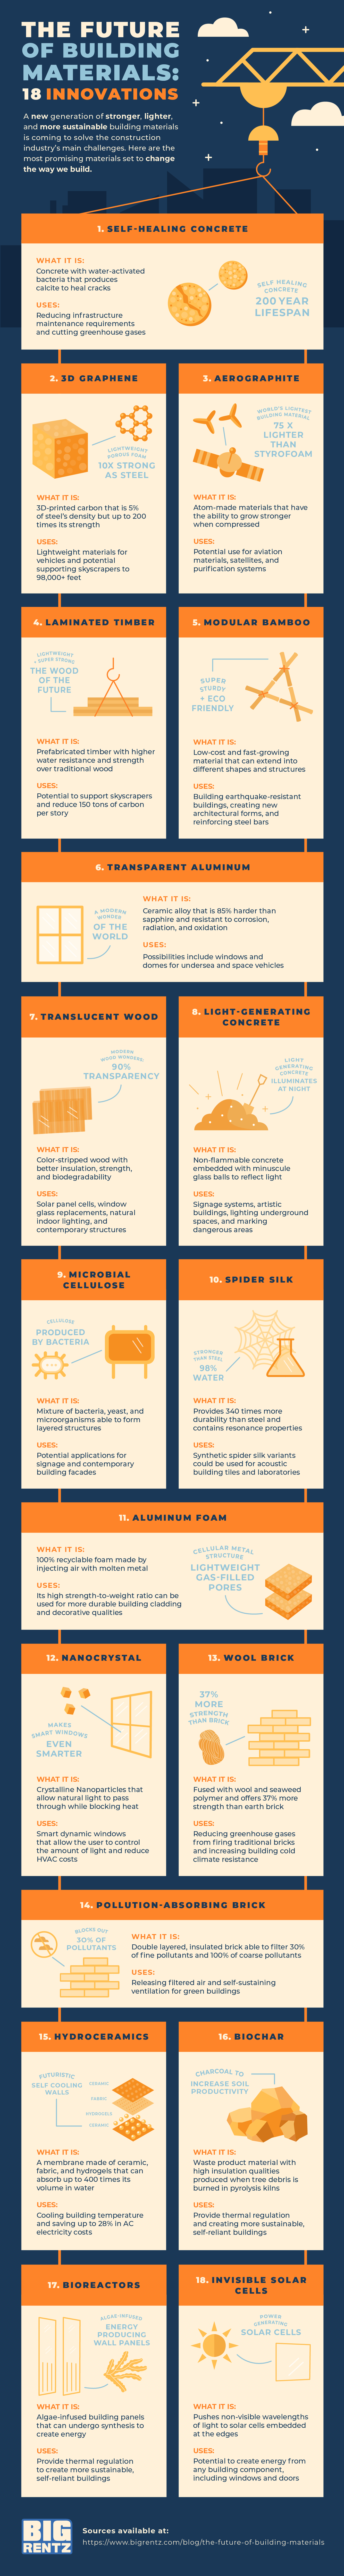 Infographic describing 16 innovative building materials.